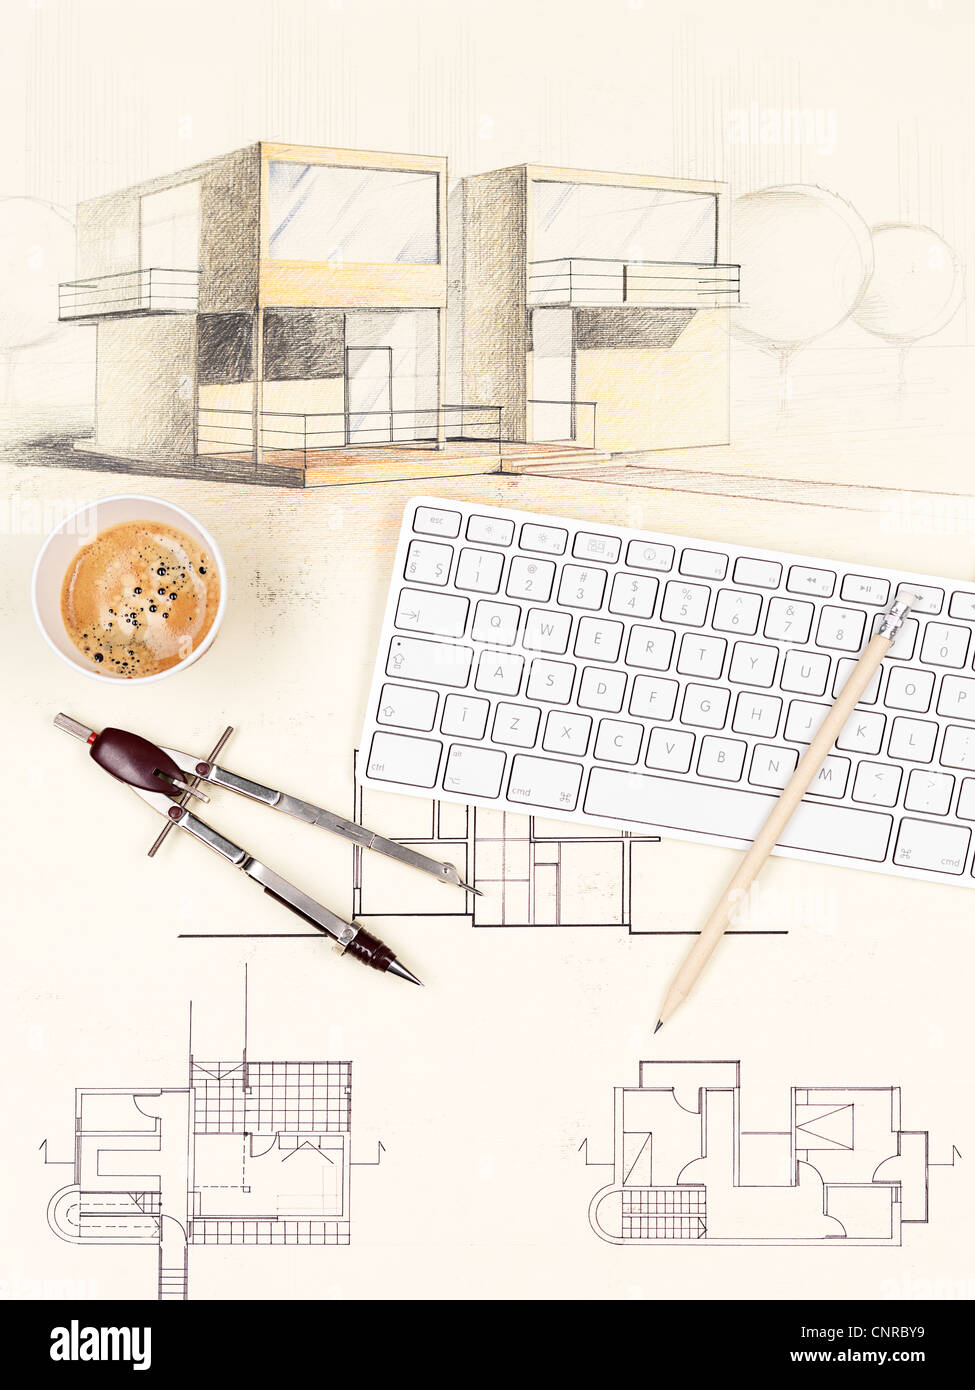 architectural blueprint of modern house, with computer keyboard, coffee cup, pencil and compasses - Stock Image